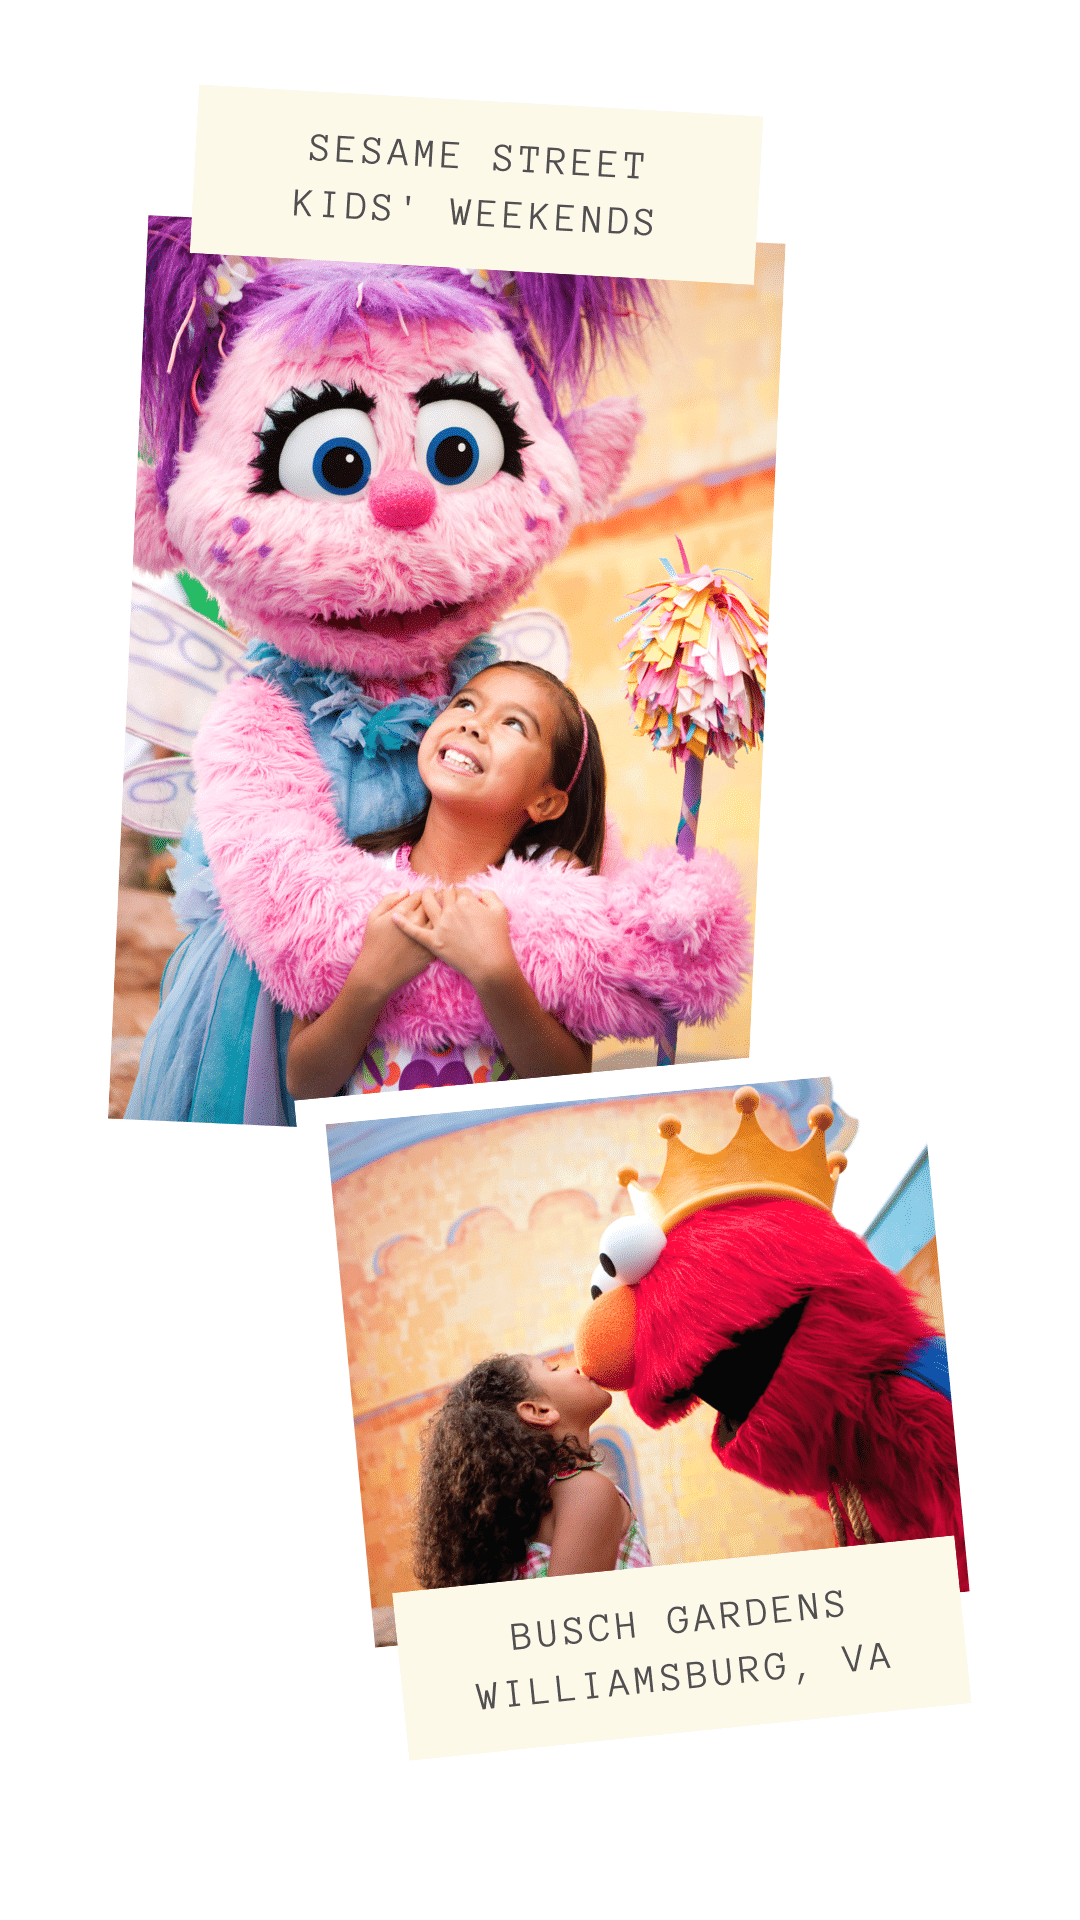 It's time to party with all of your Sesame Street friends at Busch Gardens Williamsburg, VA. All of your Sesame Street friends are throwing a party every weekending in April. With Exclusive family activities, dance parties and so much more, you won't want to miss it. View the full 2019 Schedule on my blog for more details.